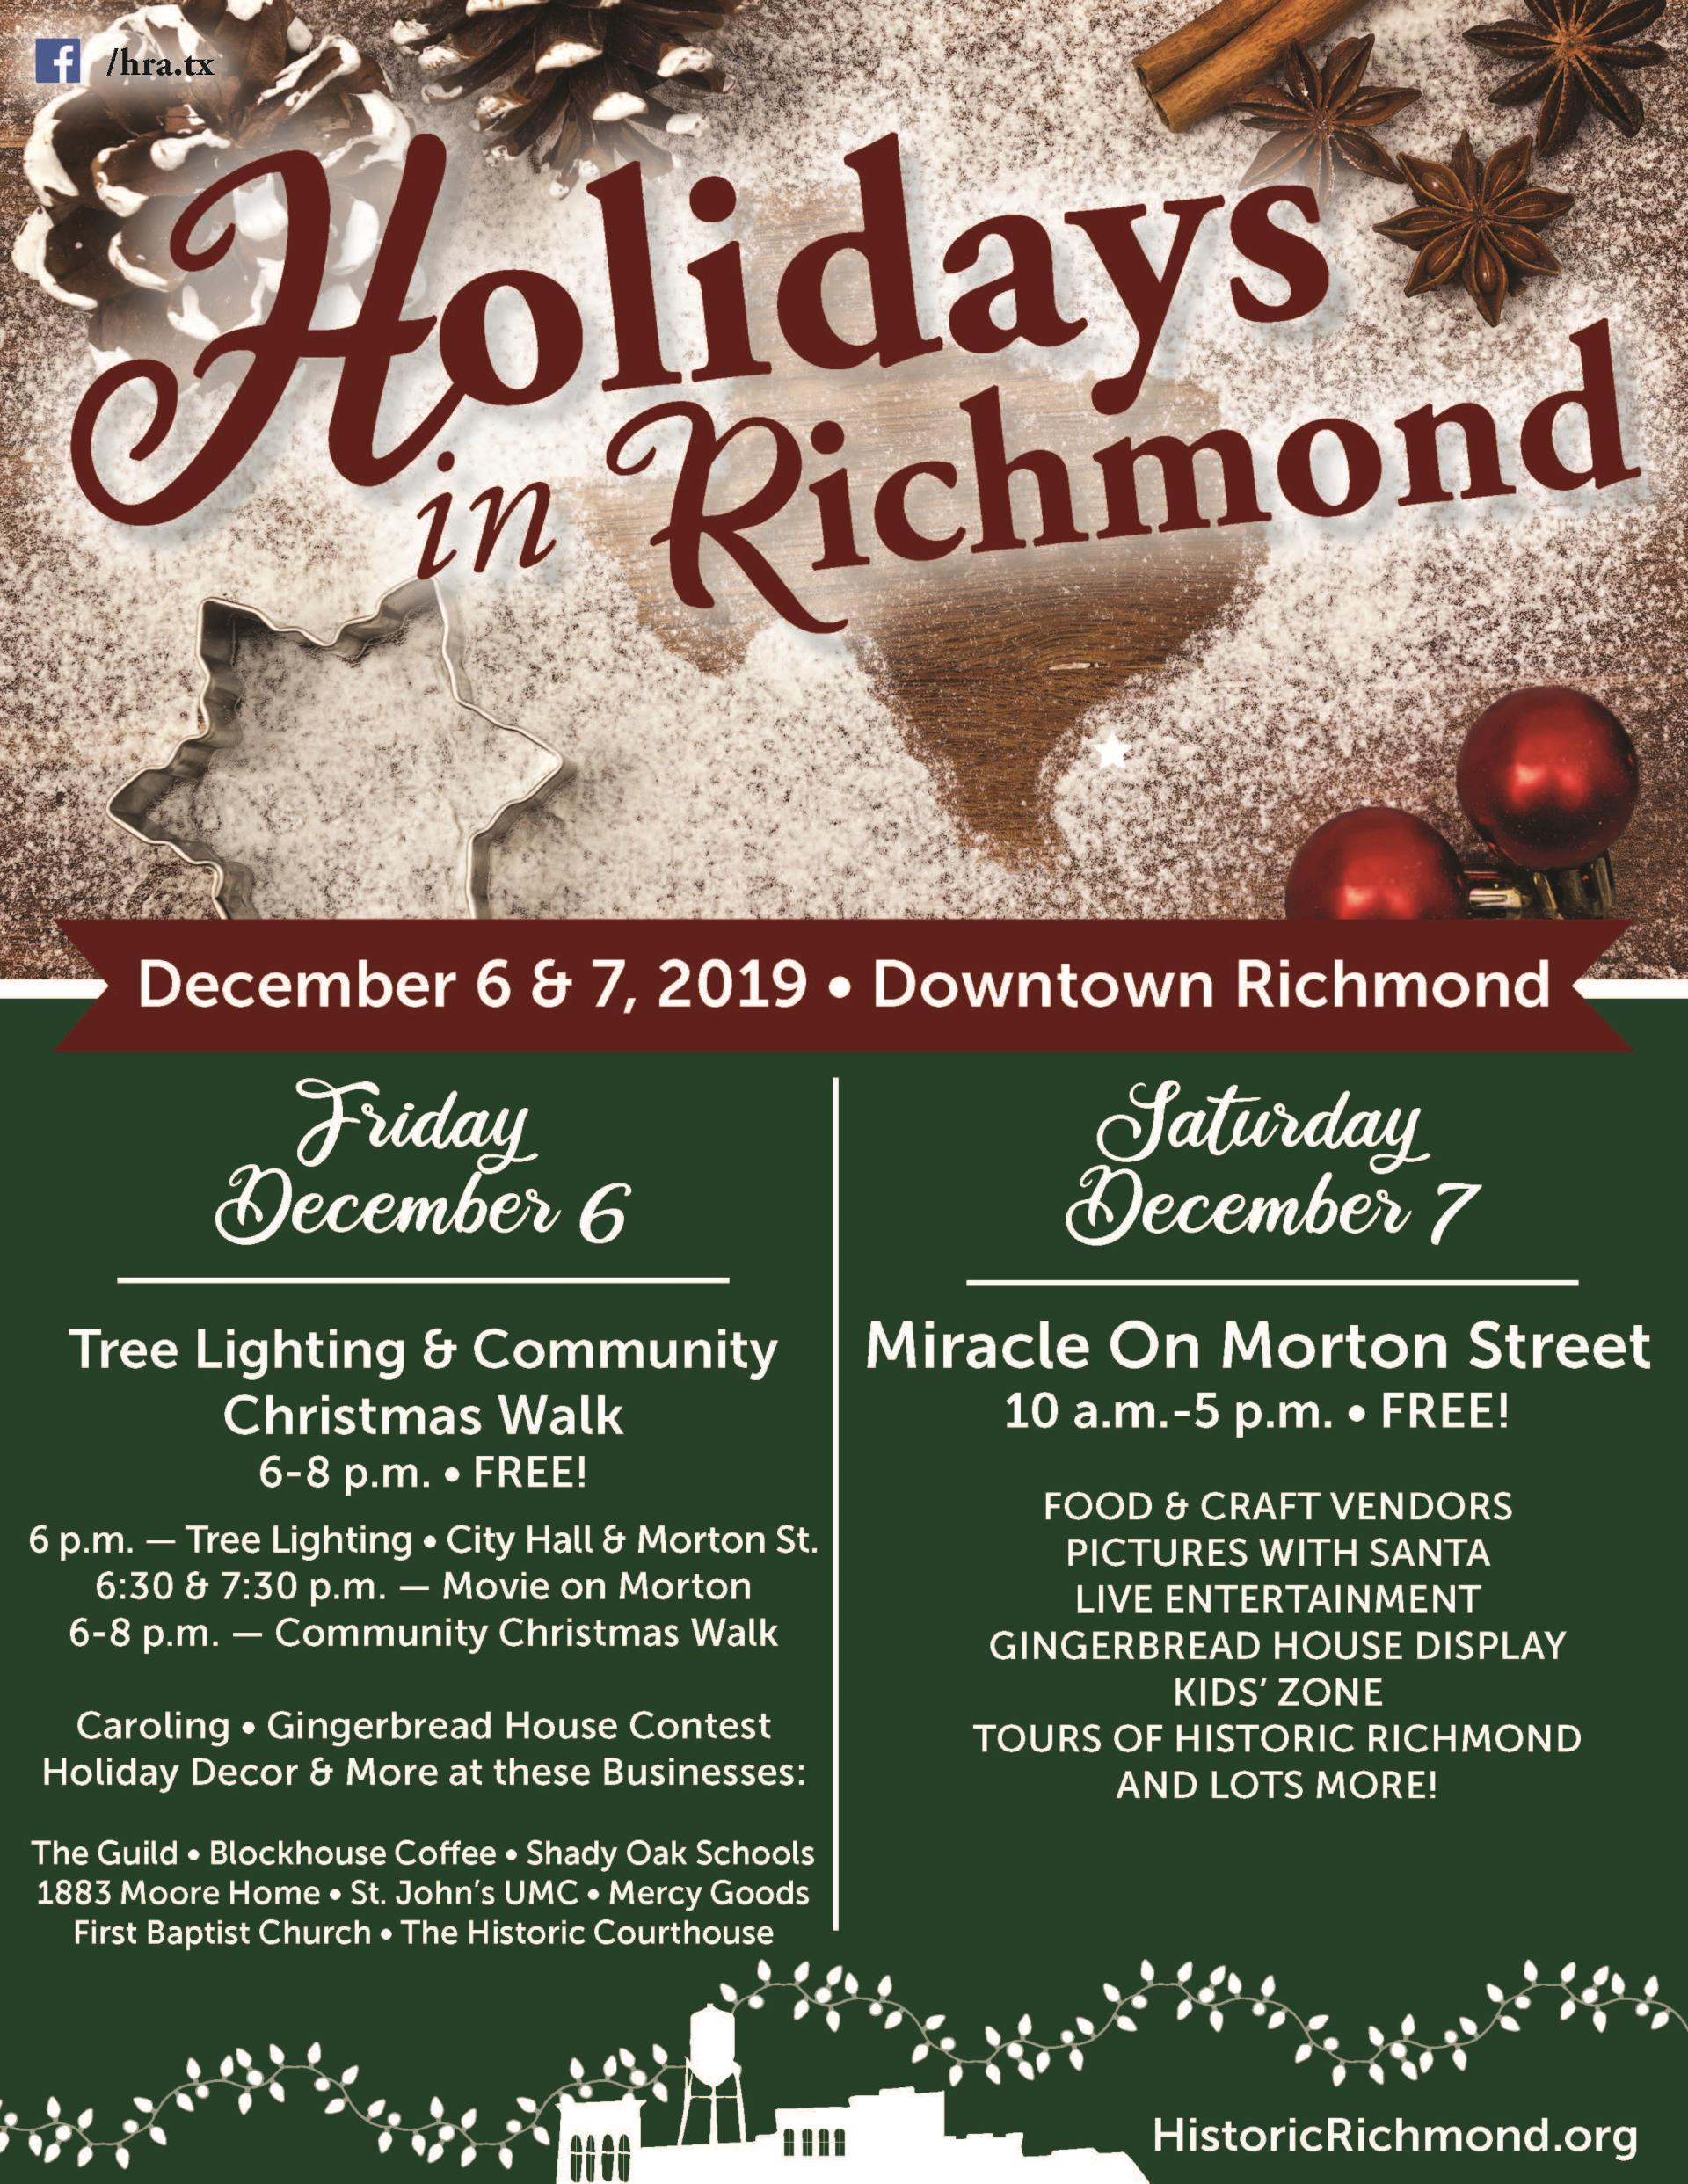 2019 MOMS Holidays in Richmond flyer for Dec. 6th & Dec. 7th